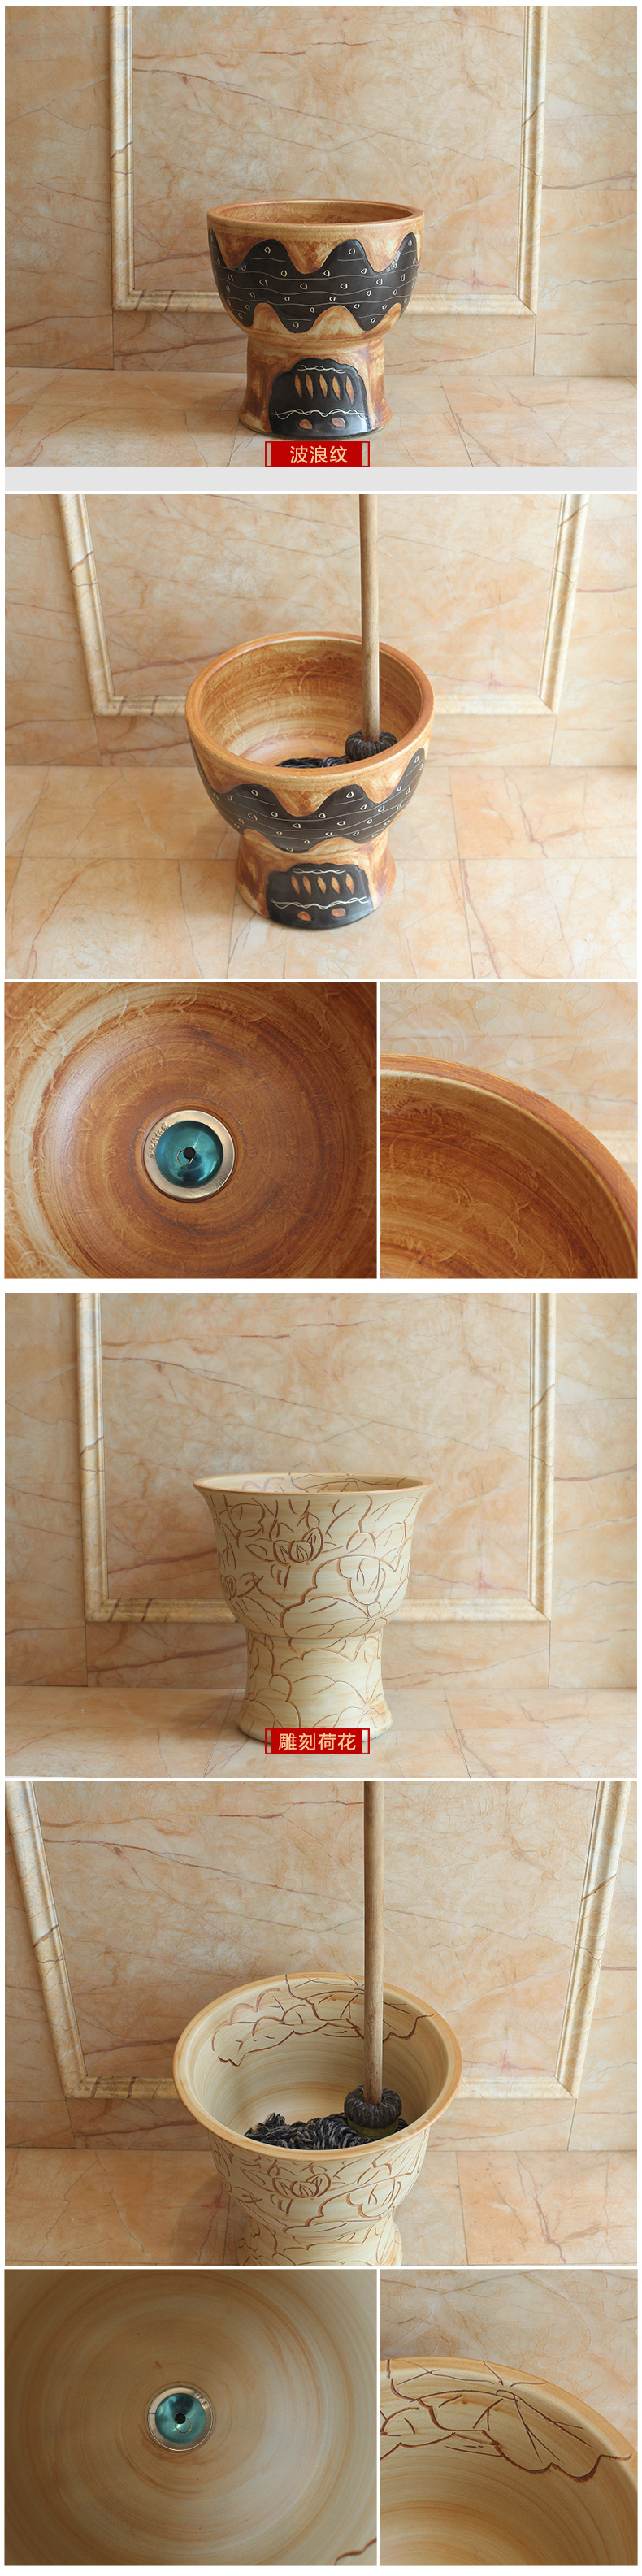 The Mop pool balcony ceramic art basin large Mop Mop pool archaize Mop pool toilet Mop basin